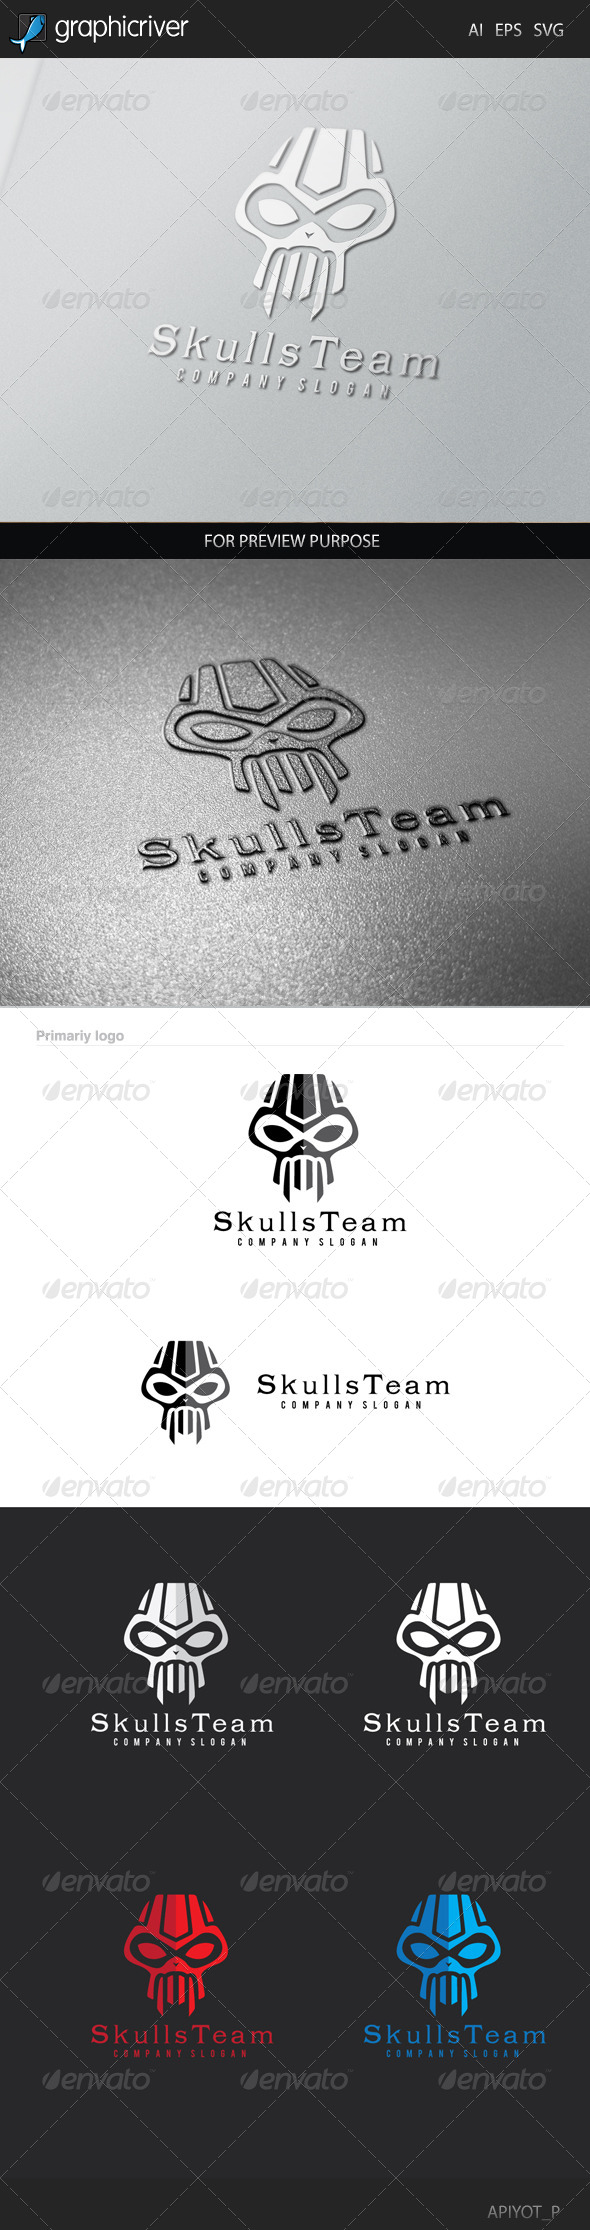 GraphicRiver Skulls Team Logo 8505919